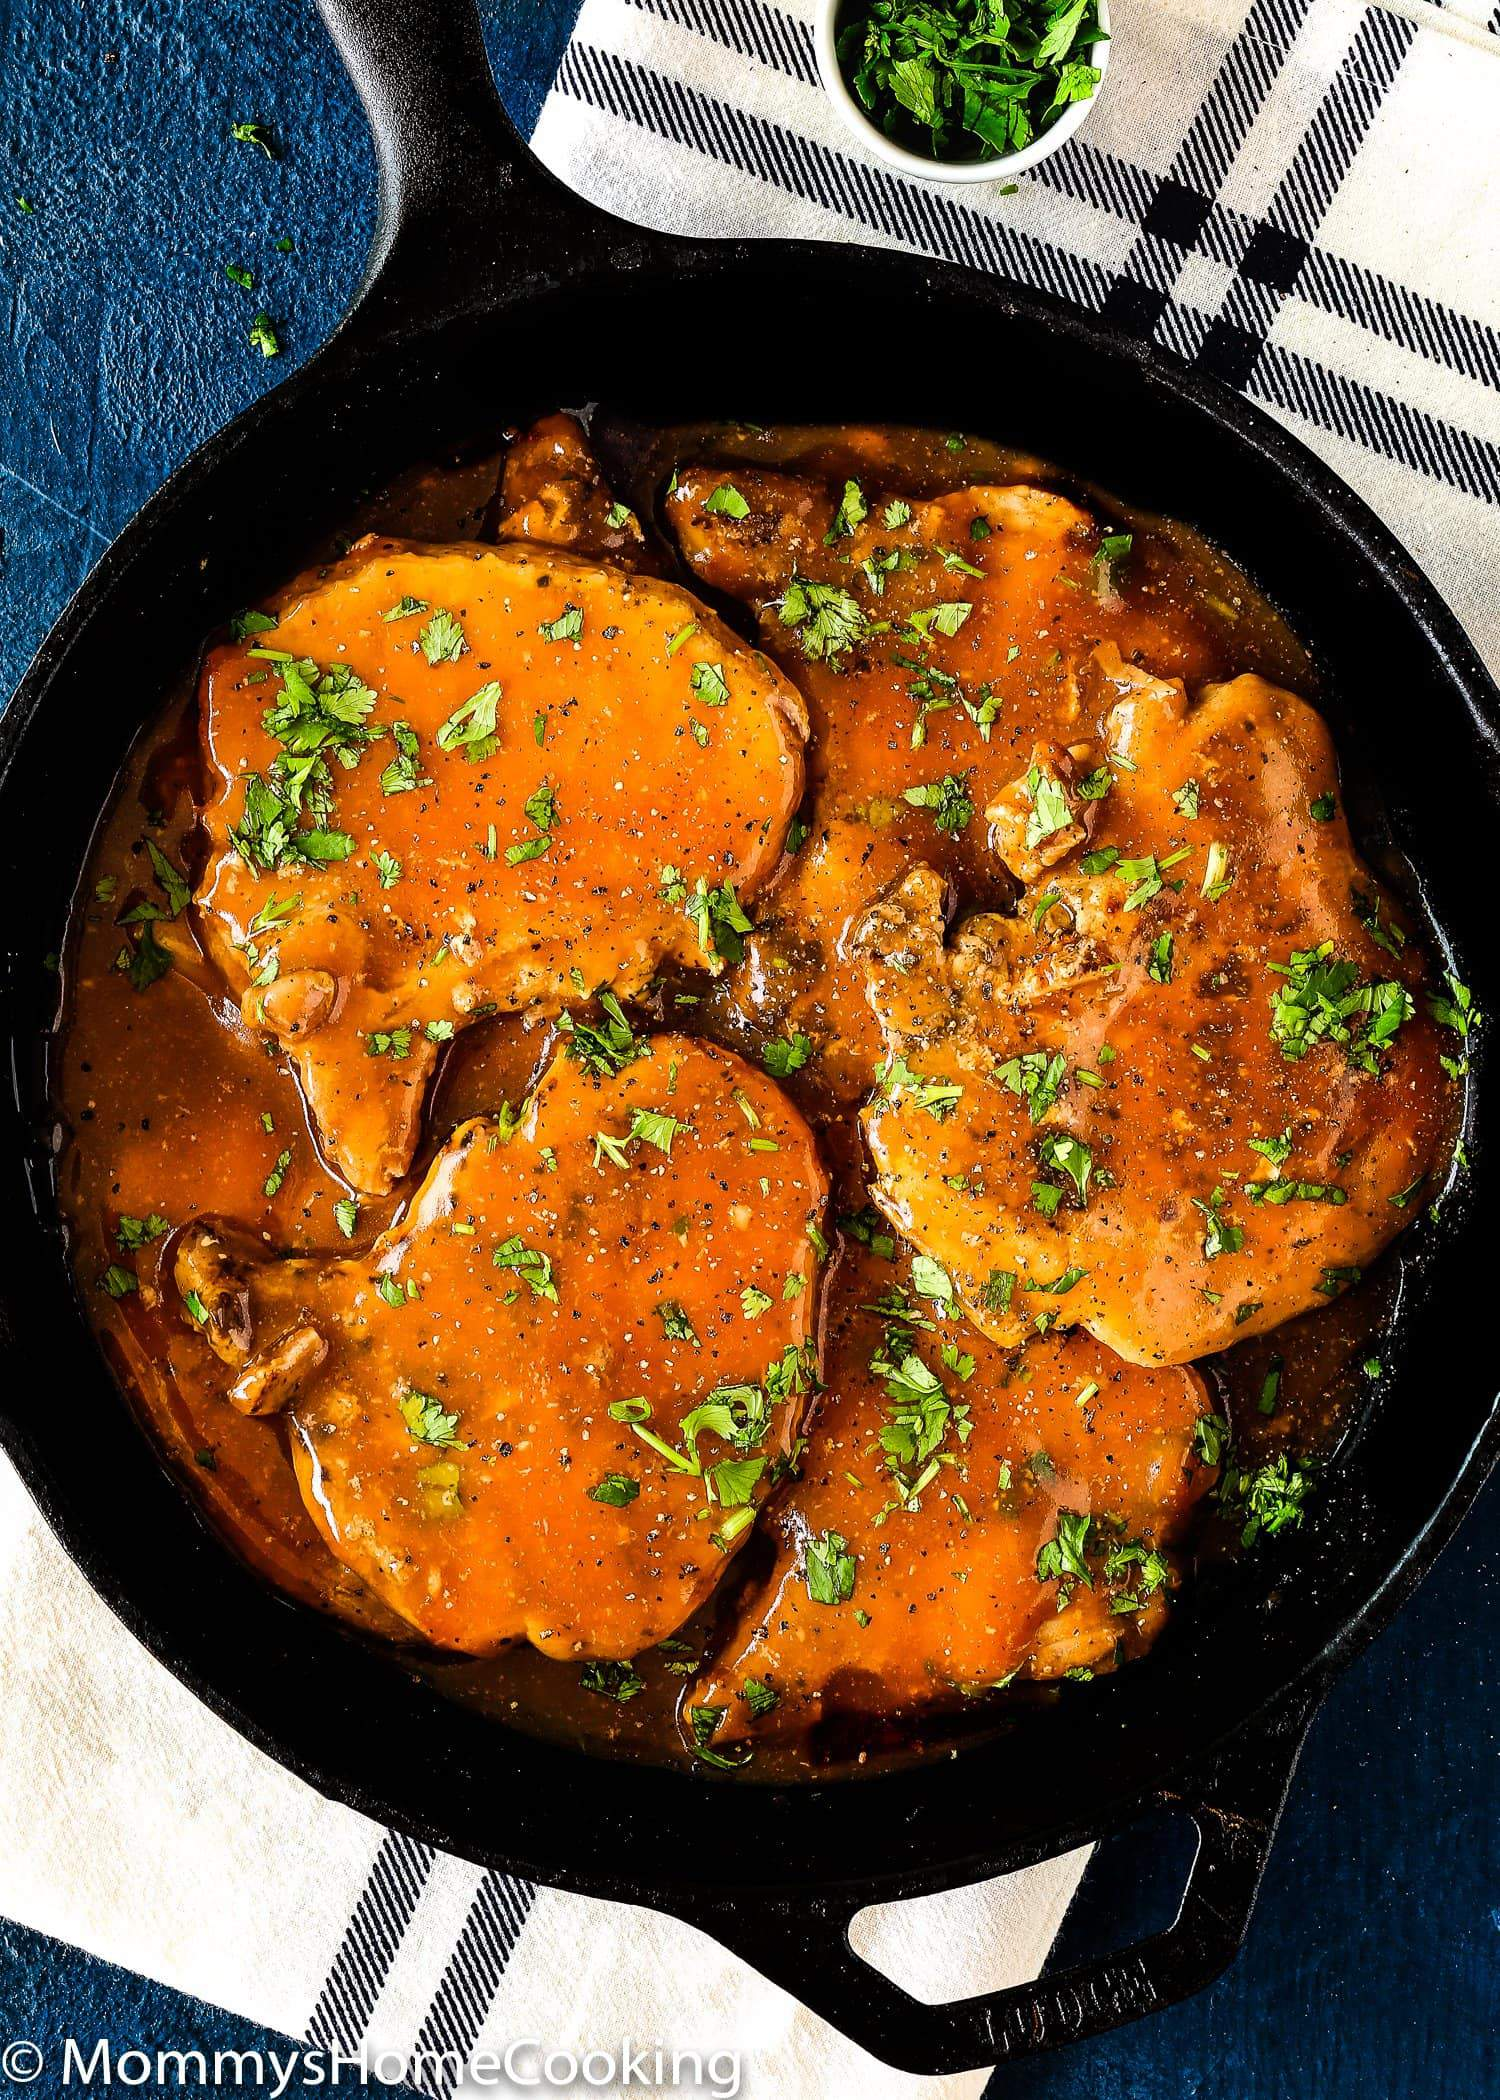 These Slow Cooker Beer Pork Chops are spectacularly delicious! This recipe results in tender, flavor-packed pork chops that taste like a million bucks. You can make this tonight with any pork chops or even CHICKEN! https://mommyshomecooking.com